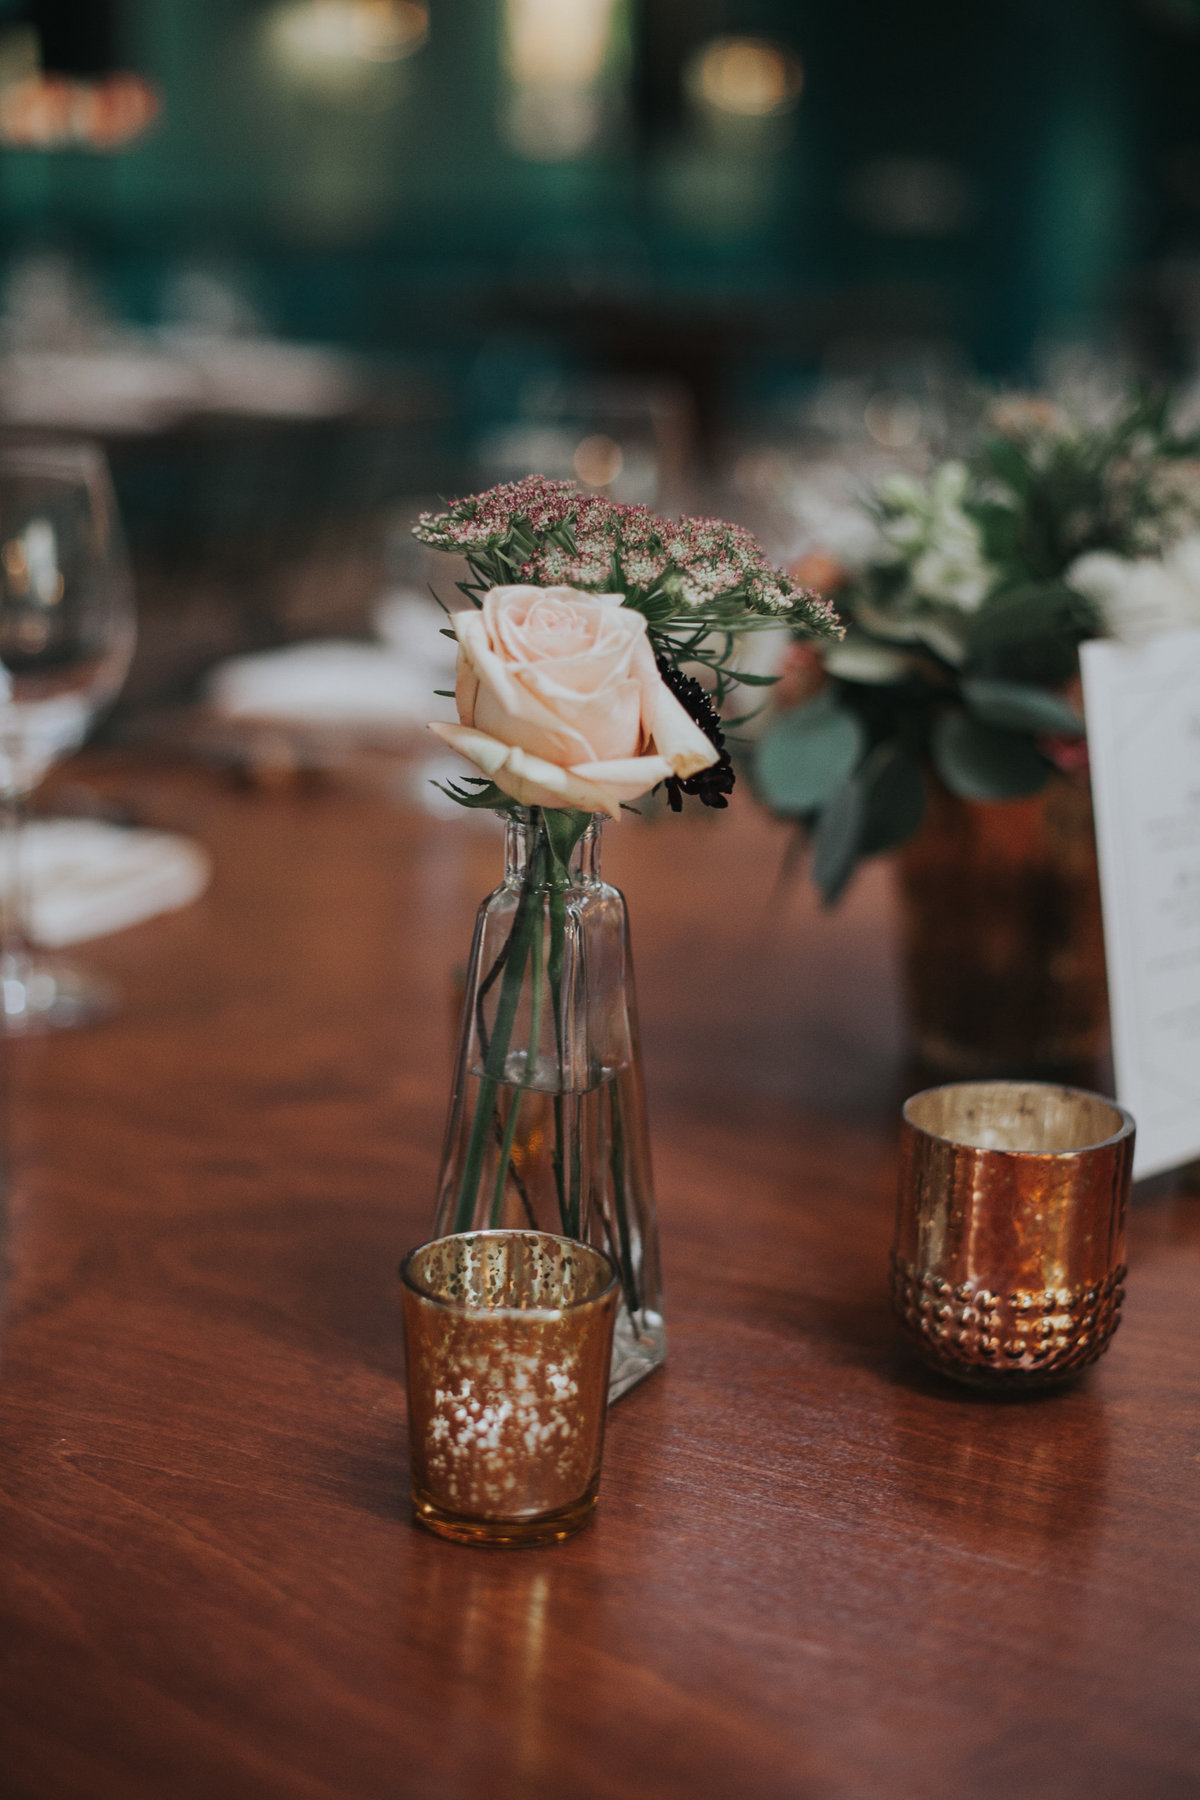 Wedding reception table setting with glass bud vase centerpiece at The Fig House